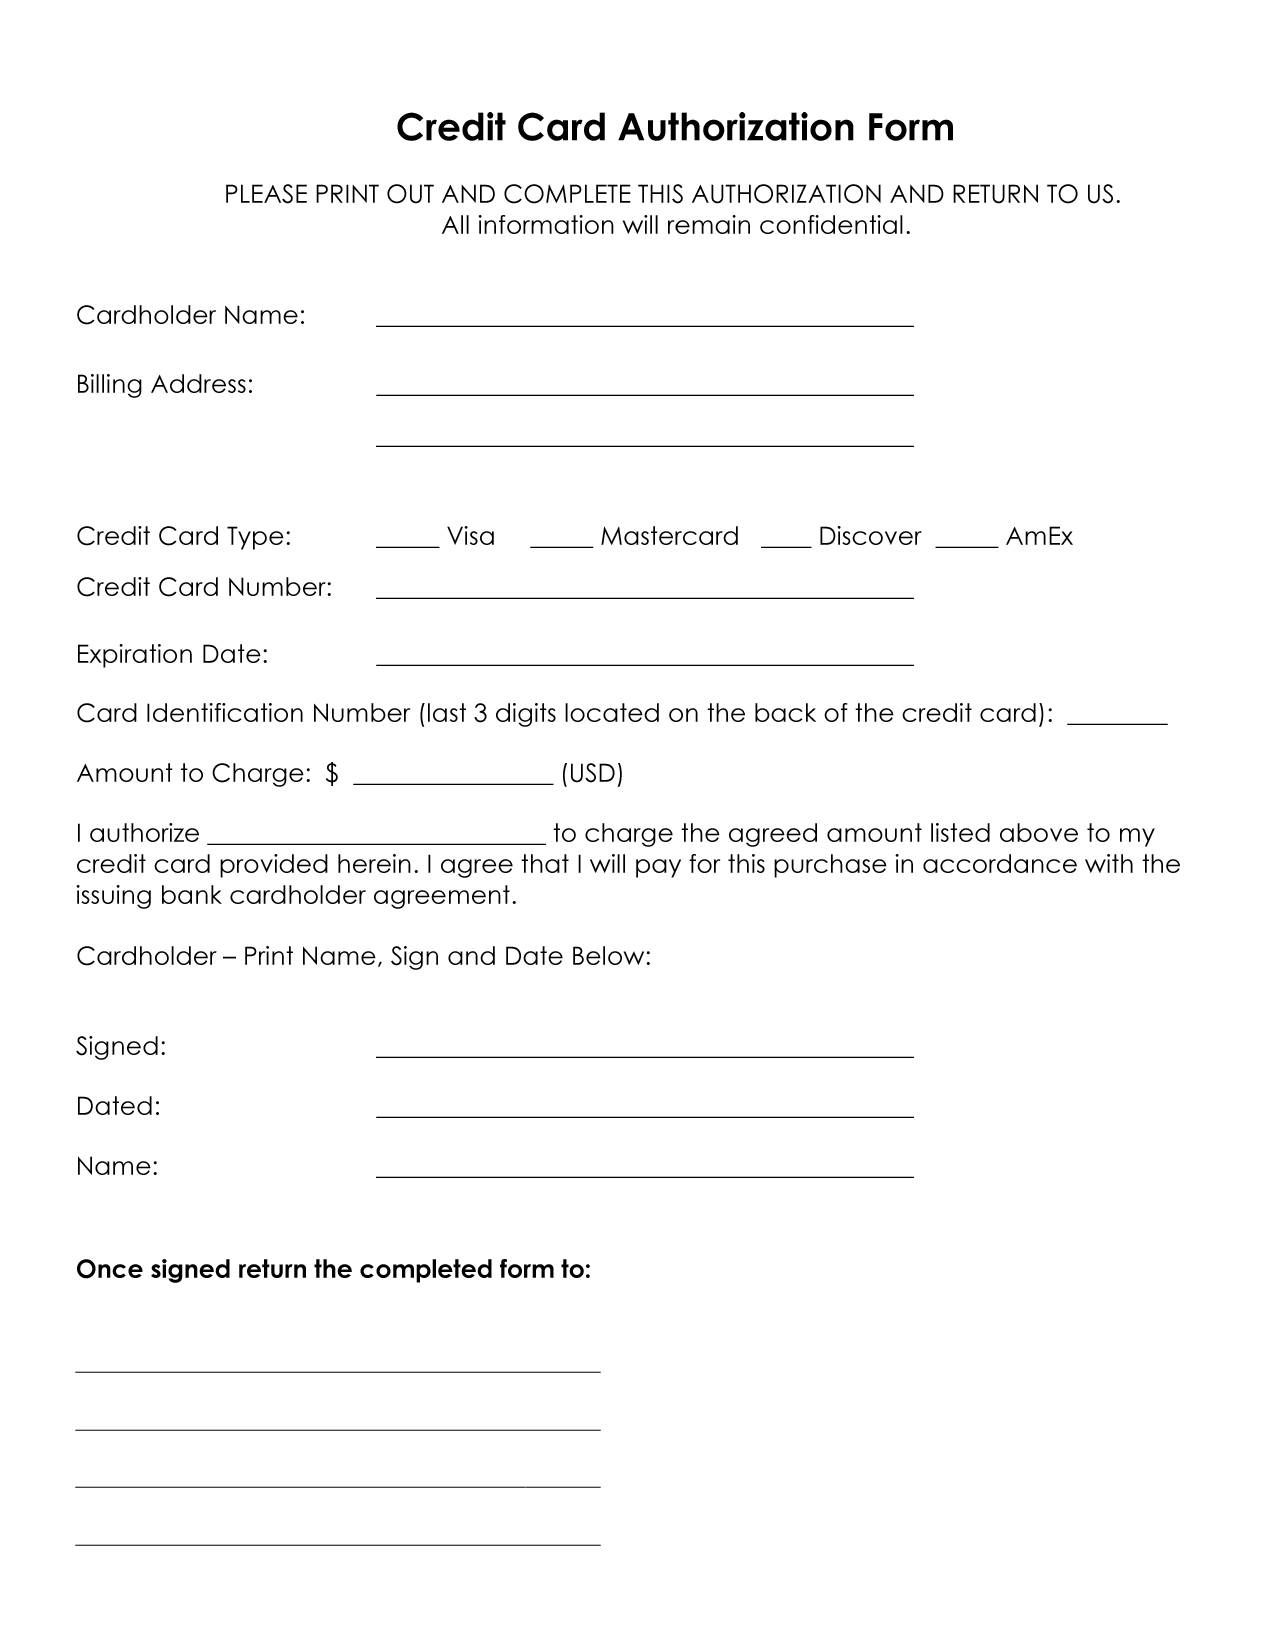 Cool Credit Card Authorization Form Sample For Printing  Business